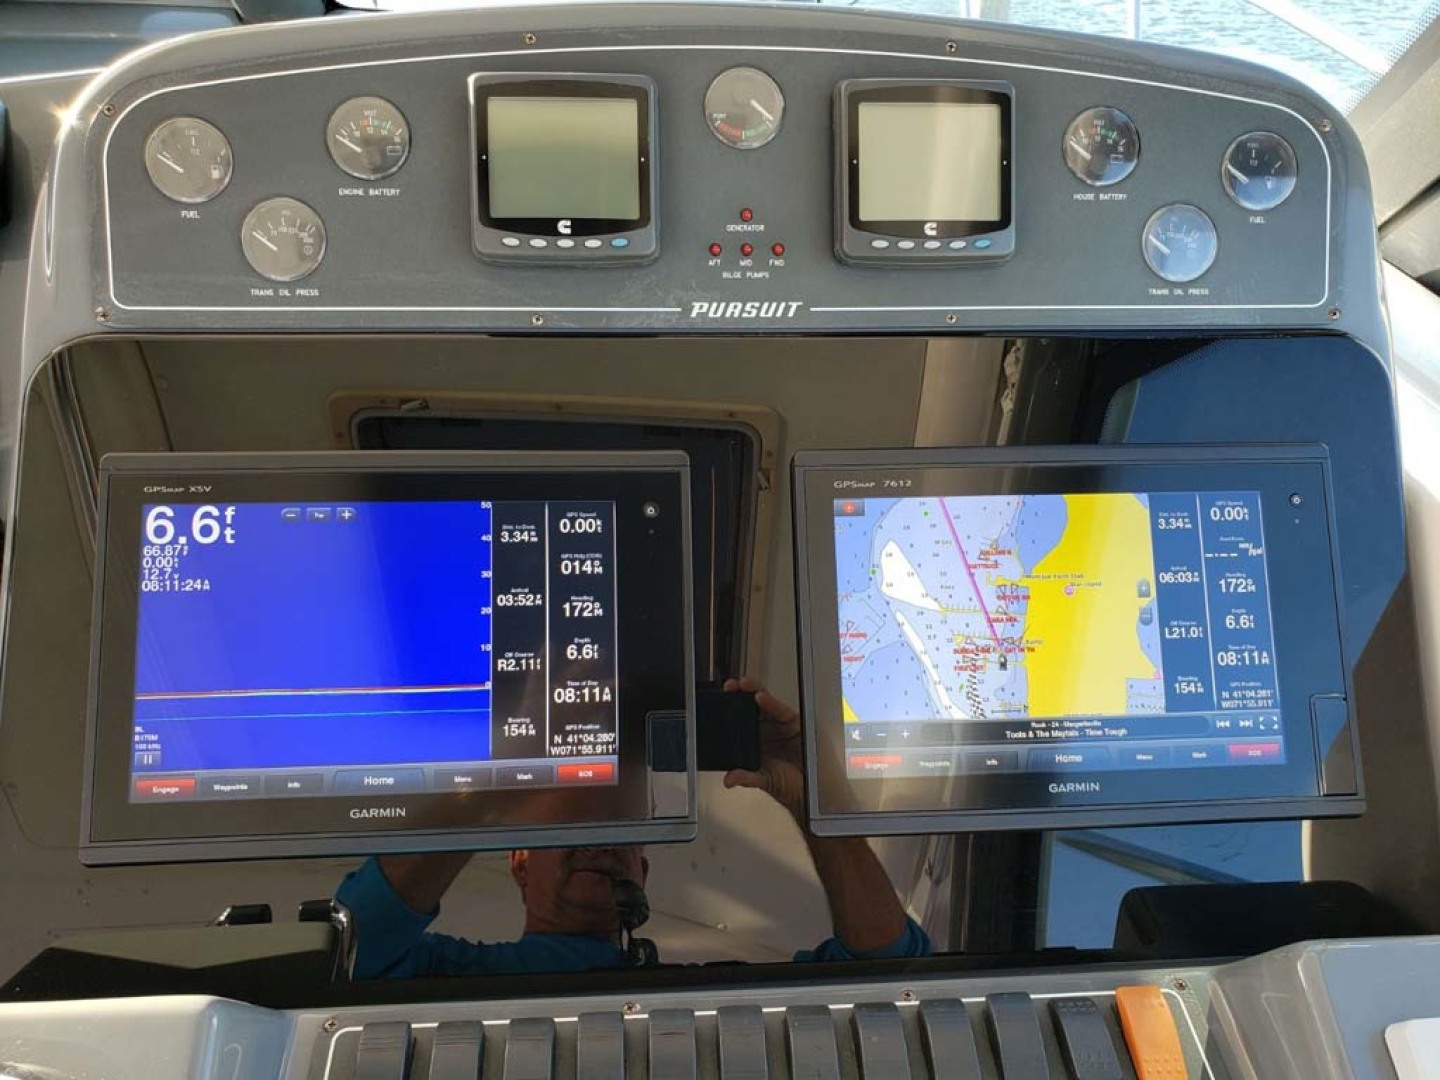 Pursuit-3800 Express 2004-CAN MAN Montauk-New York-United States-Garmin Electronics Package-1250948 | Thumbnail